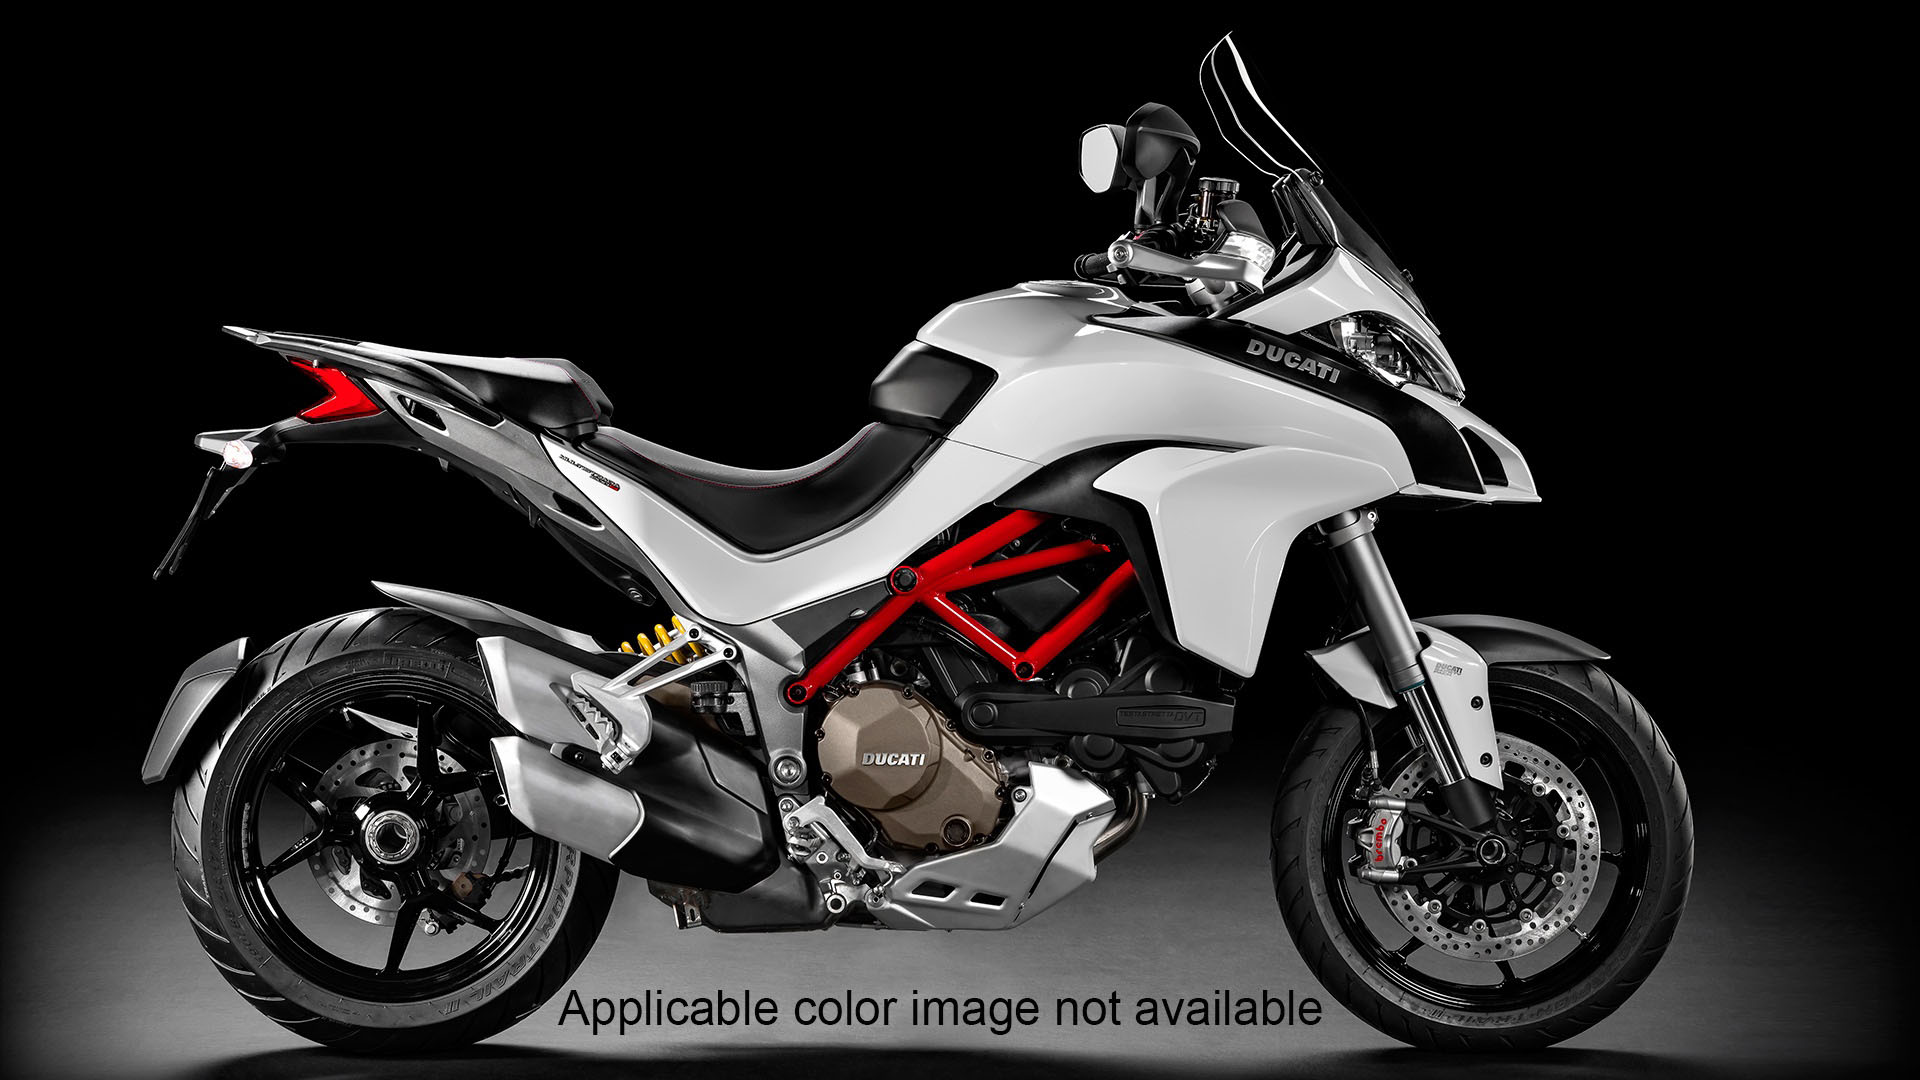 2017 Ducati Multistrada 1200 S in Daytona Beach, Florida